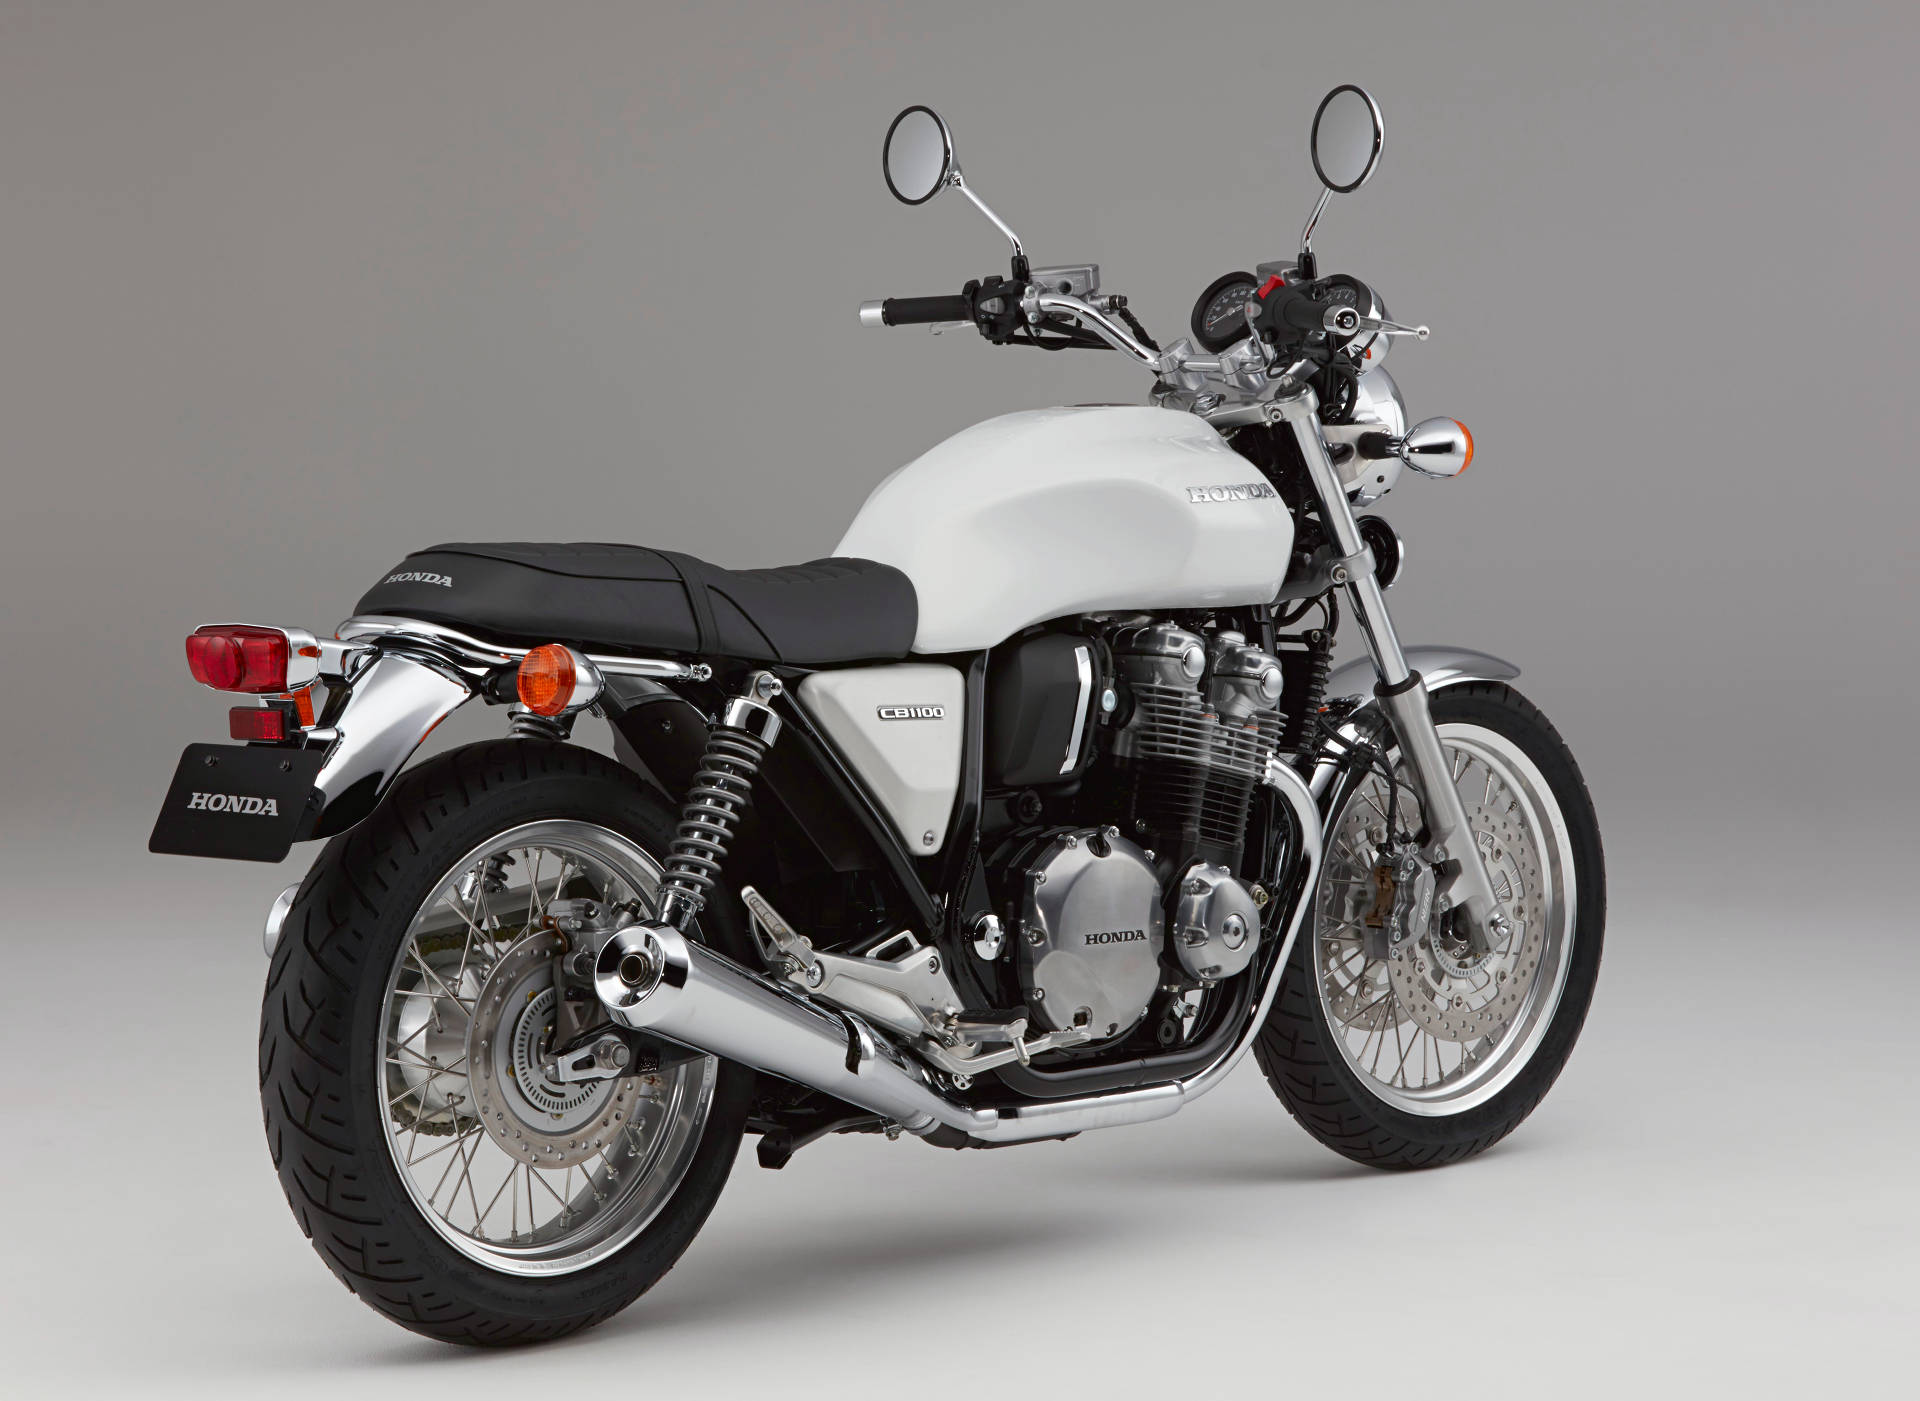 honda updates cb1100 range includes sportier rs model. Black Bedroom Furniture Sets. Home Design Ideas